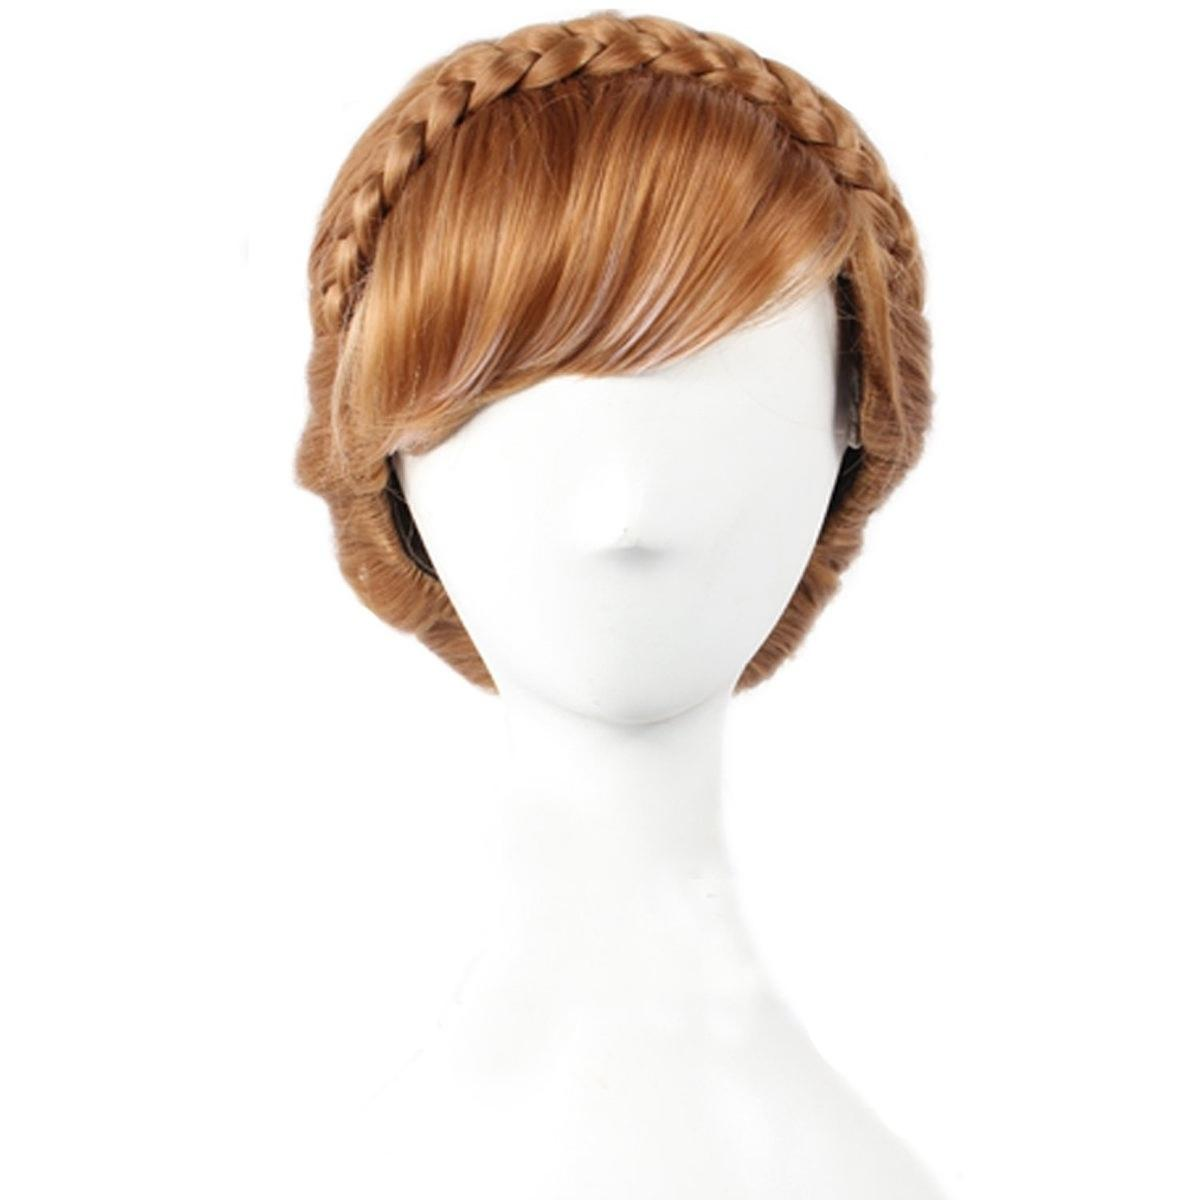 2019 Women S Braids Updo Style Costume Cosplay Party Wigs Brown Short From  Szcdhxh 988422c001e9